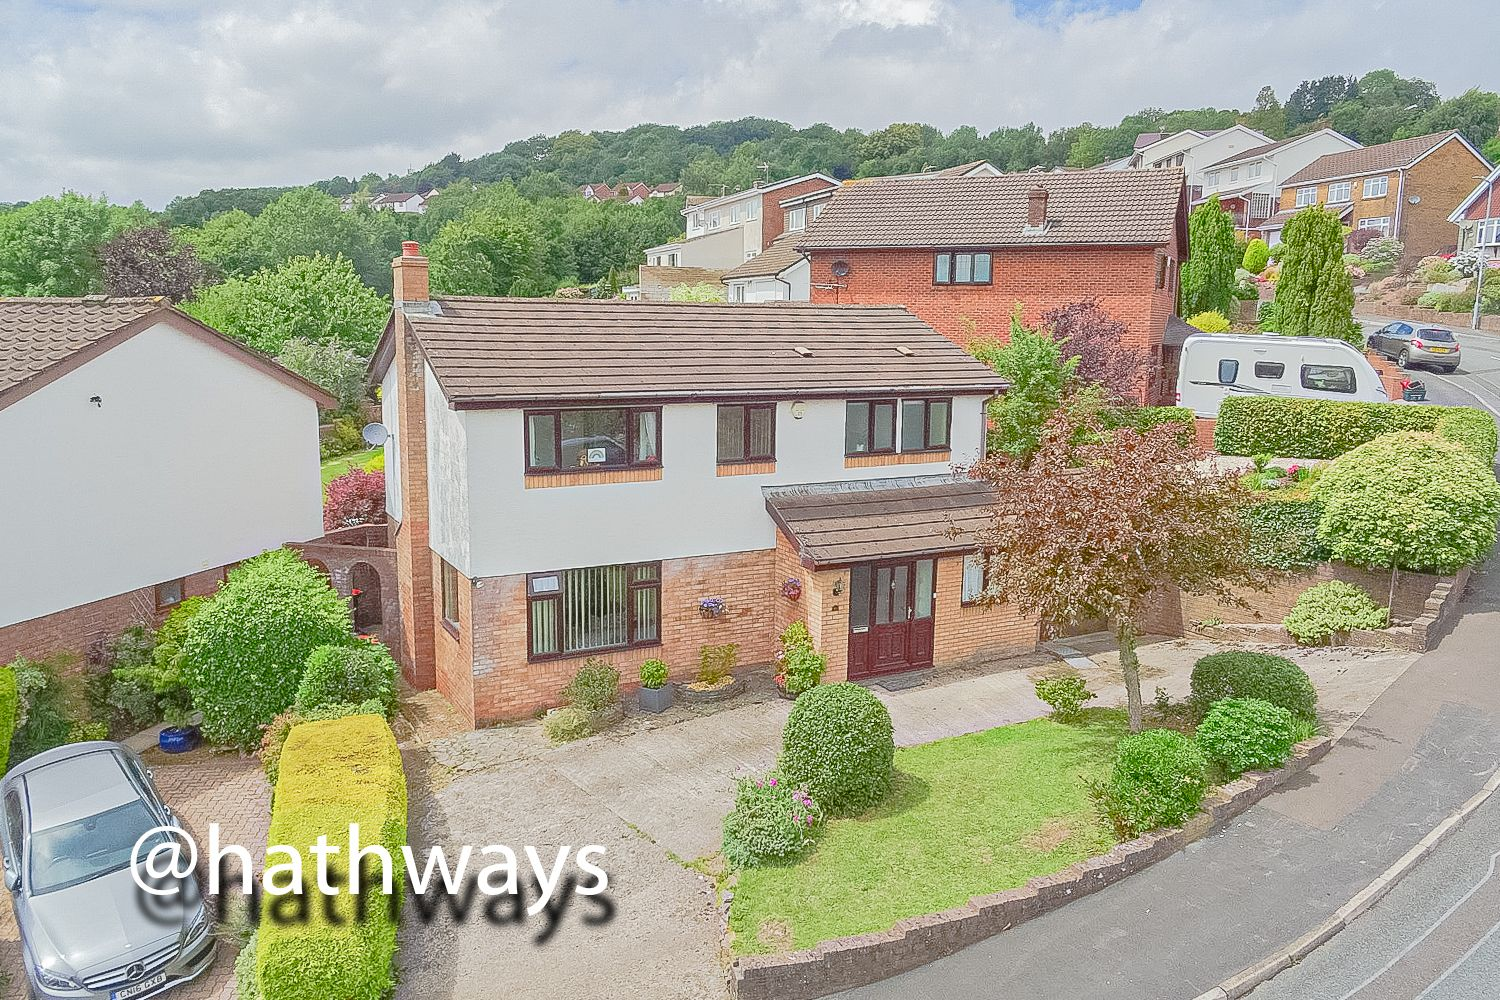 5 bed house for sale in Trinity View - Property Image 1